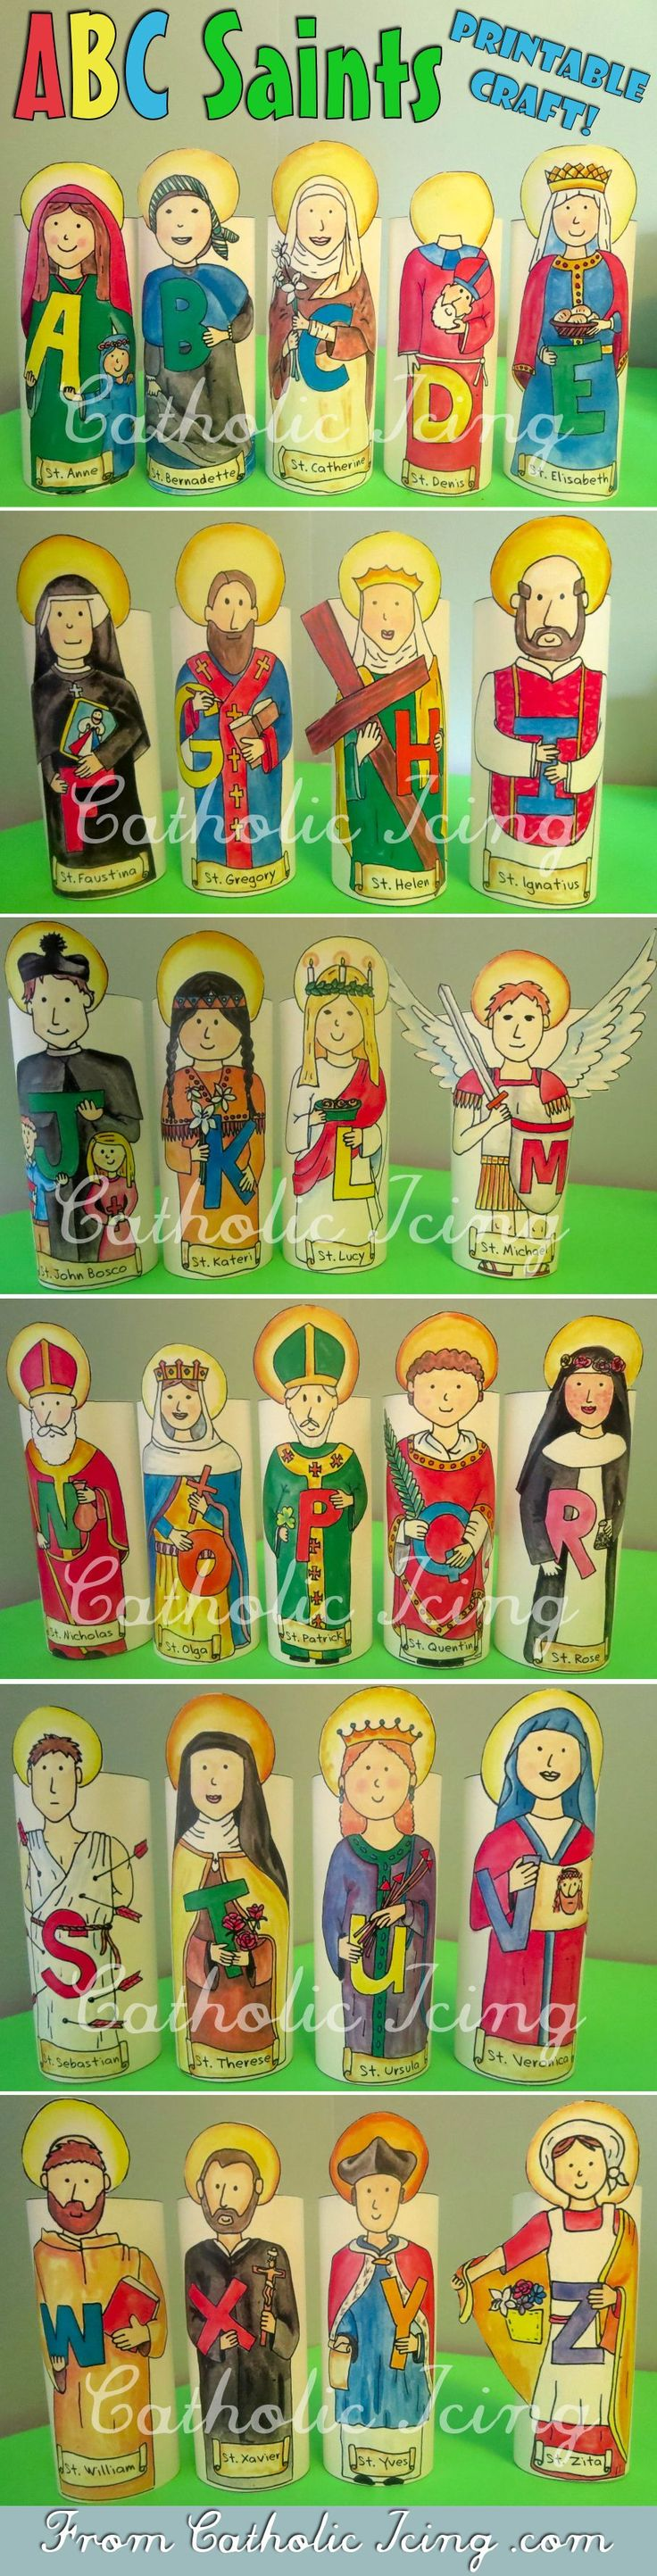 94 best Sunday School Hits images on Pinterest | Catholic crafts ...